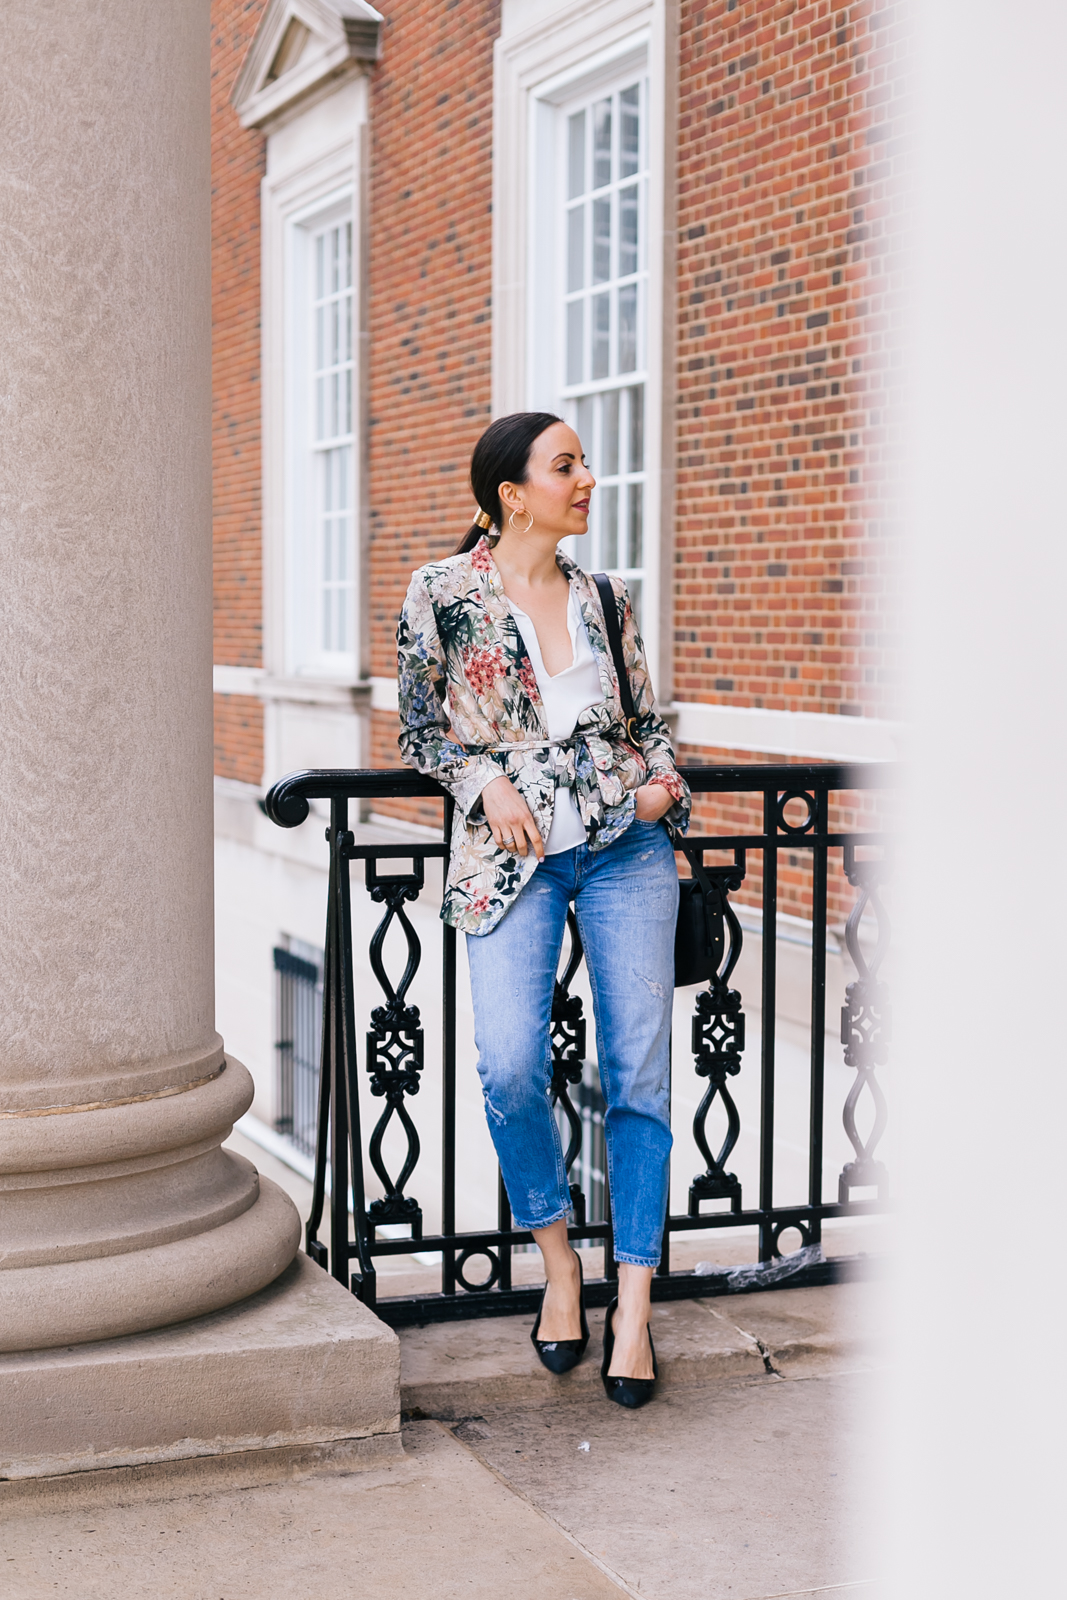 Yana Frigelis of NoMad Luxuries wearing a floral blazer from Zara with boyfriends jeans and black accessories for Spring